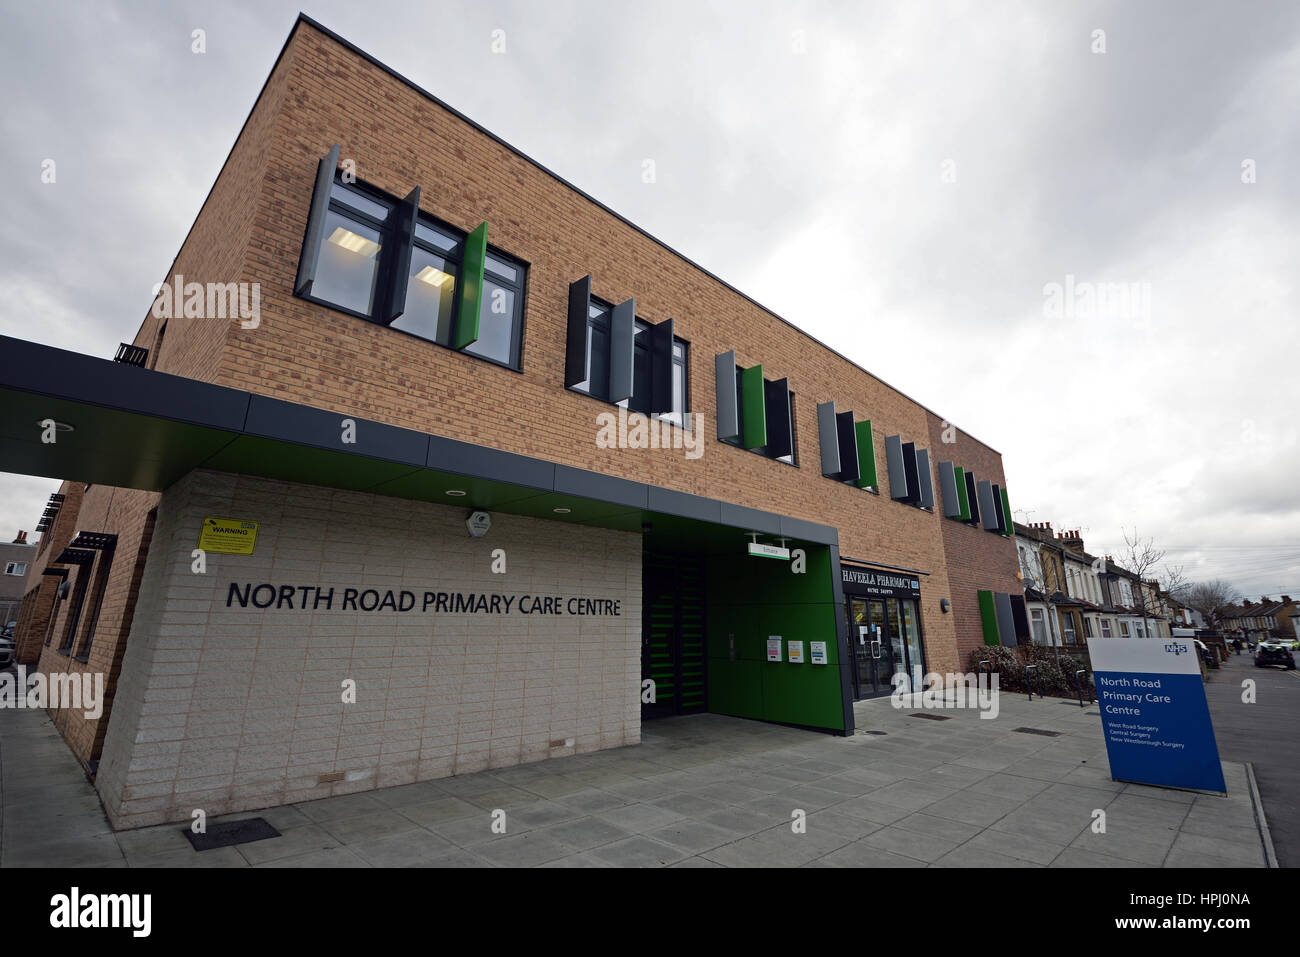 North Road Primary Care Centre in Westcliff on Sea, Essex, is a new doctors clinic amalgamating three smaller doctor's - Stock Image